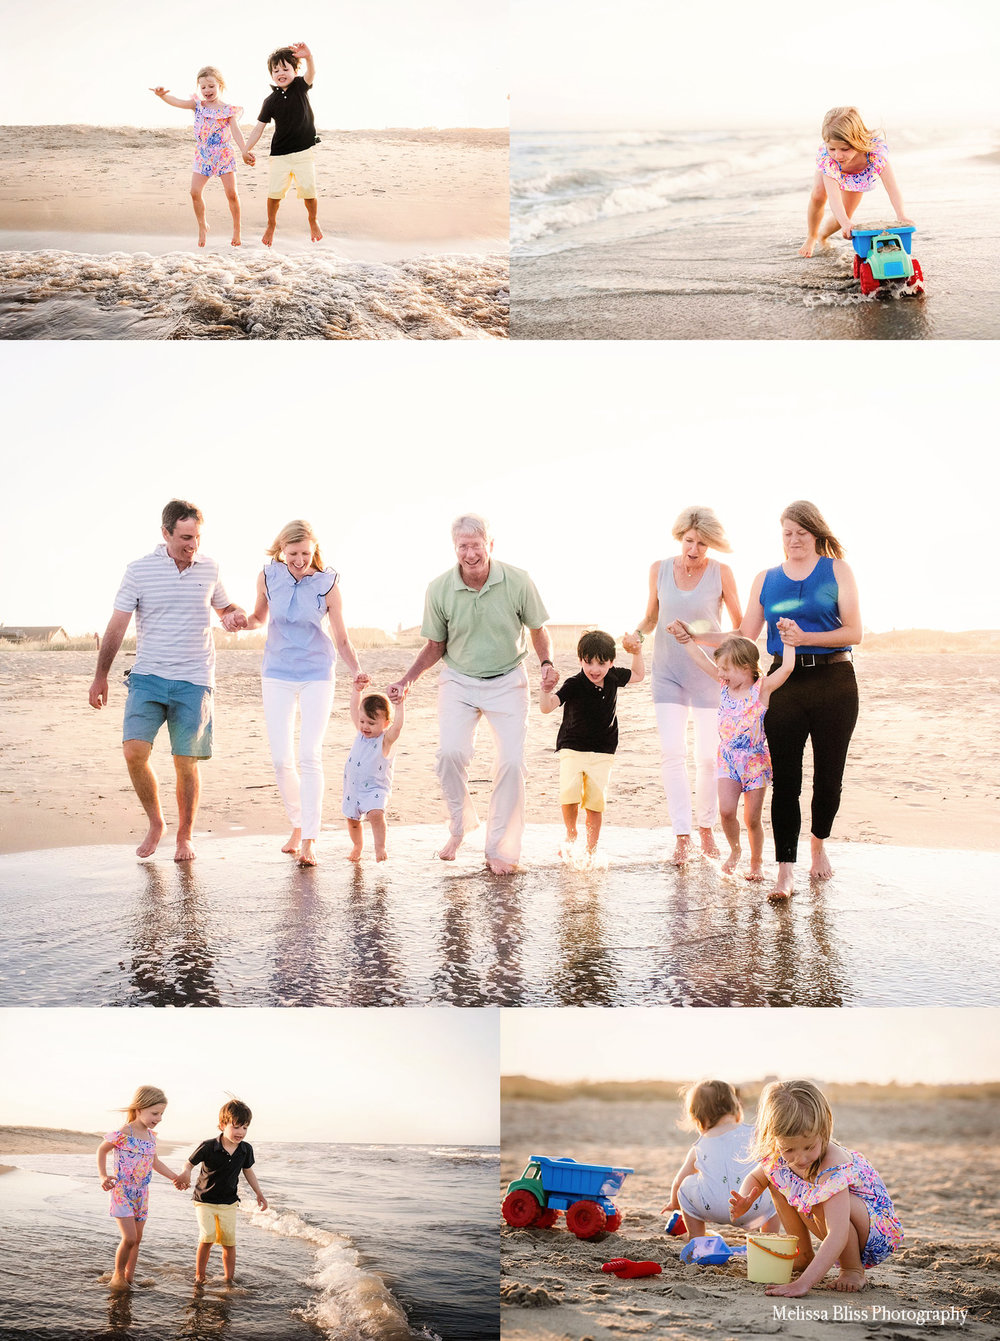 virginia-beach-sandbrige-candid-family-beach-photos-melissa-bliss-photography-va-beach-norfolk-family-photographers.jpg